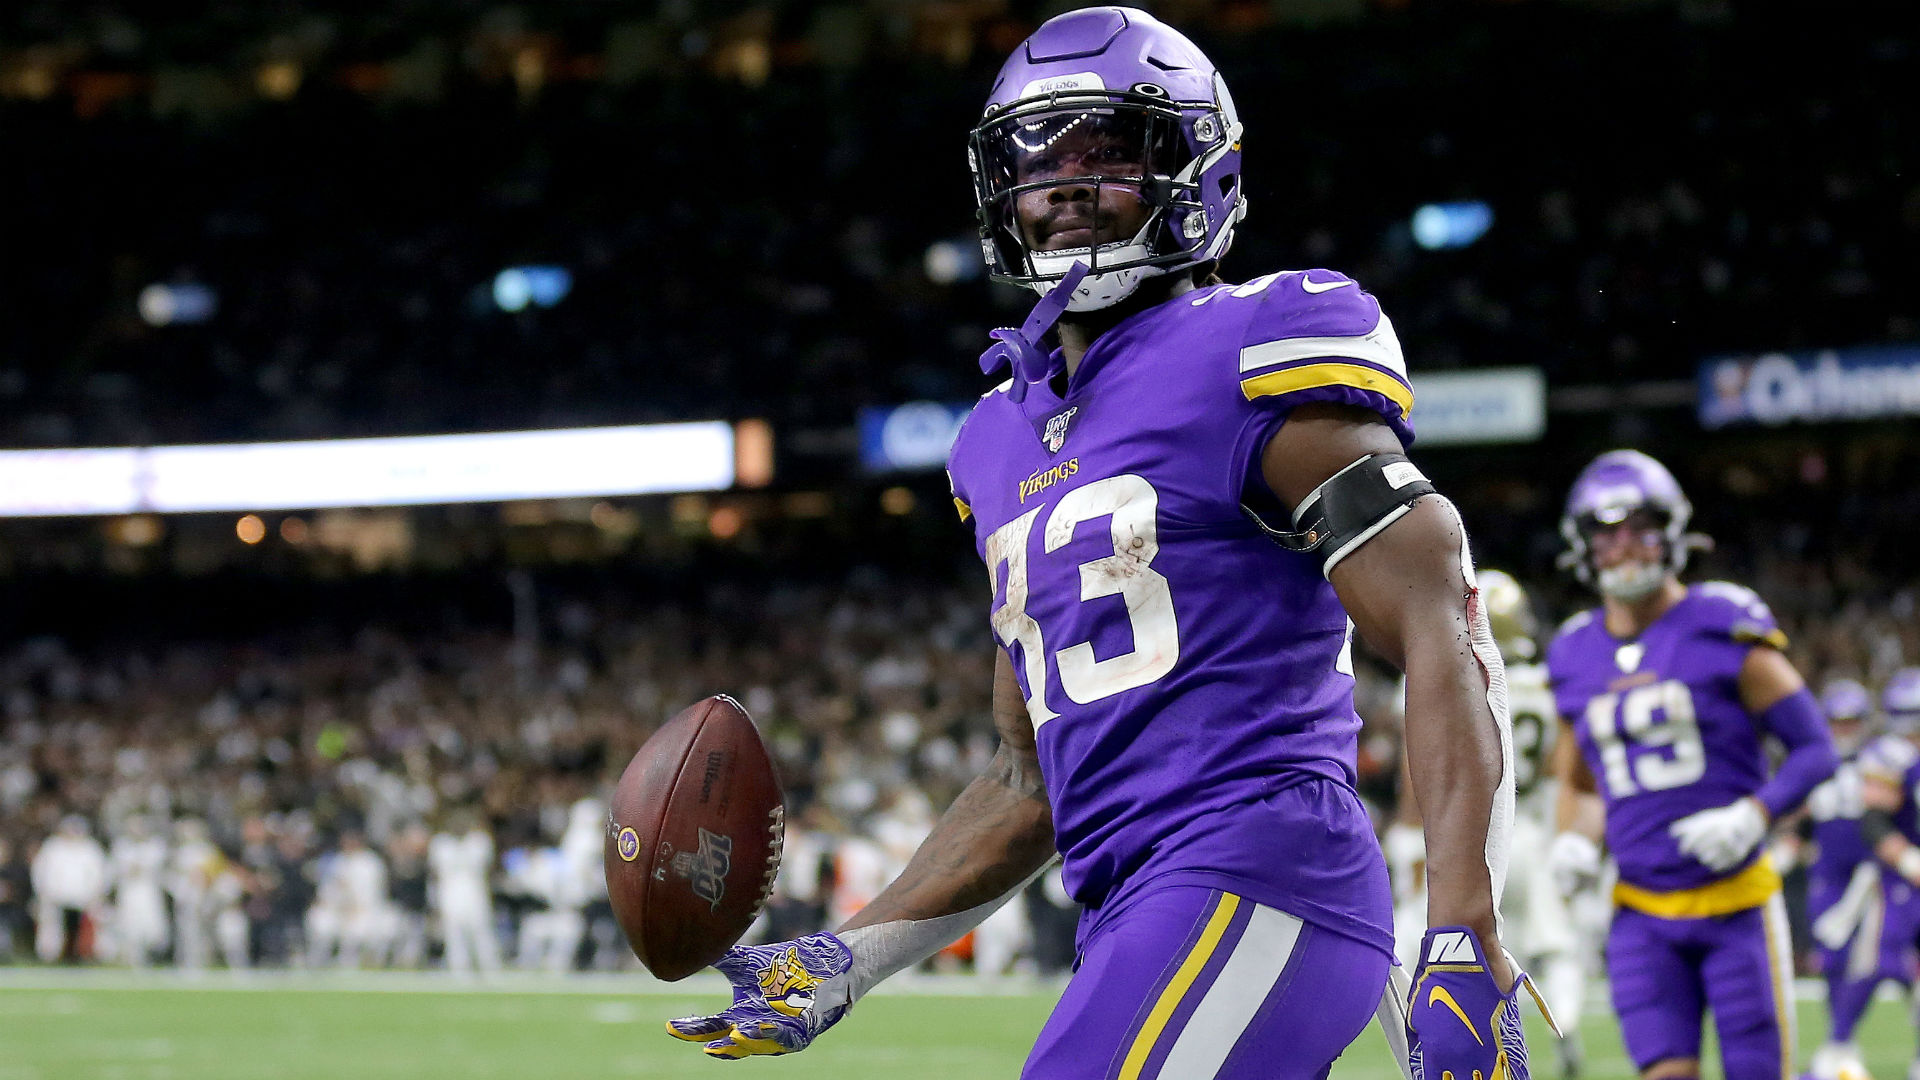 NFL predictions 2020: Final standings, playoff projections, Super Bowl 55 pick 6